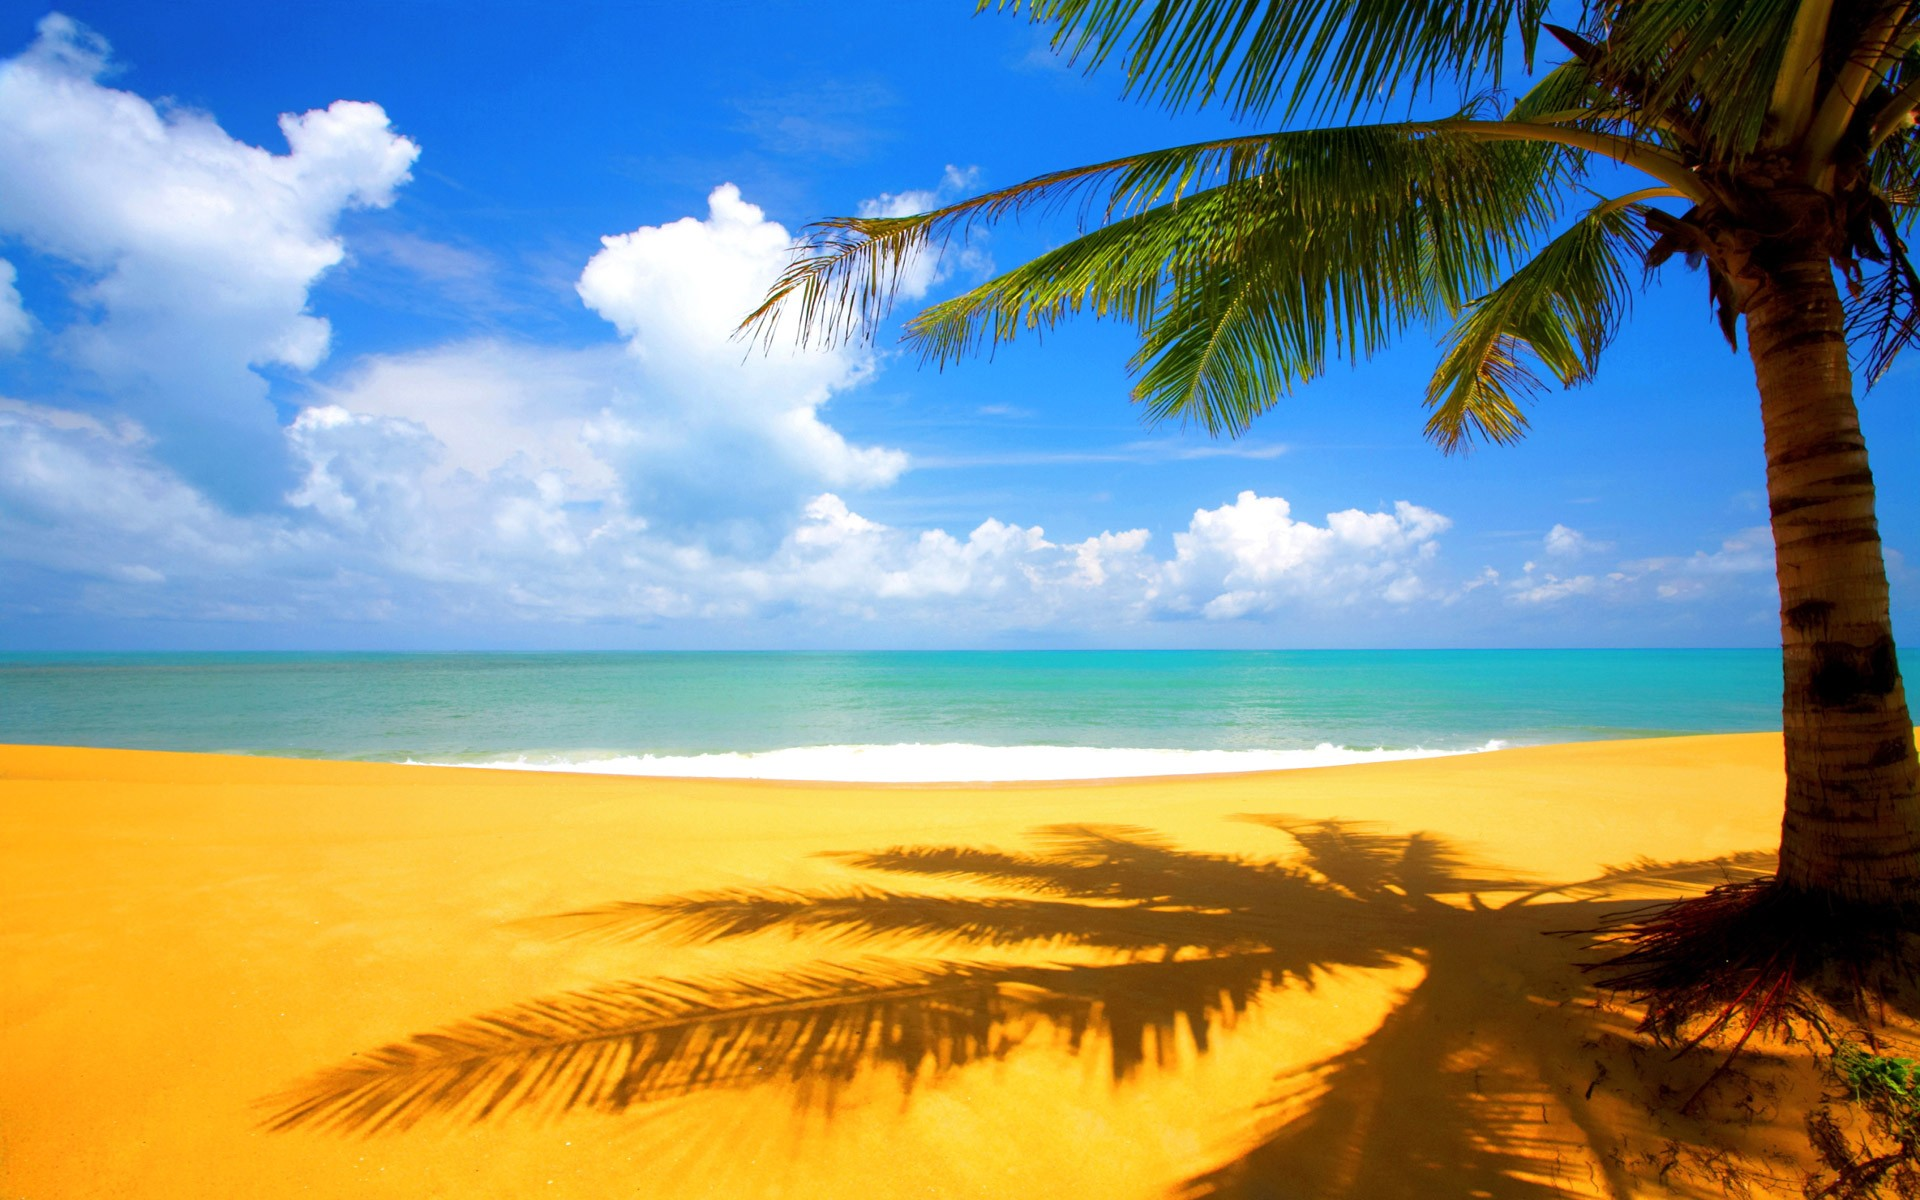 Beach-desktop-wallpaper-wp3802901